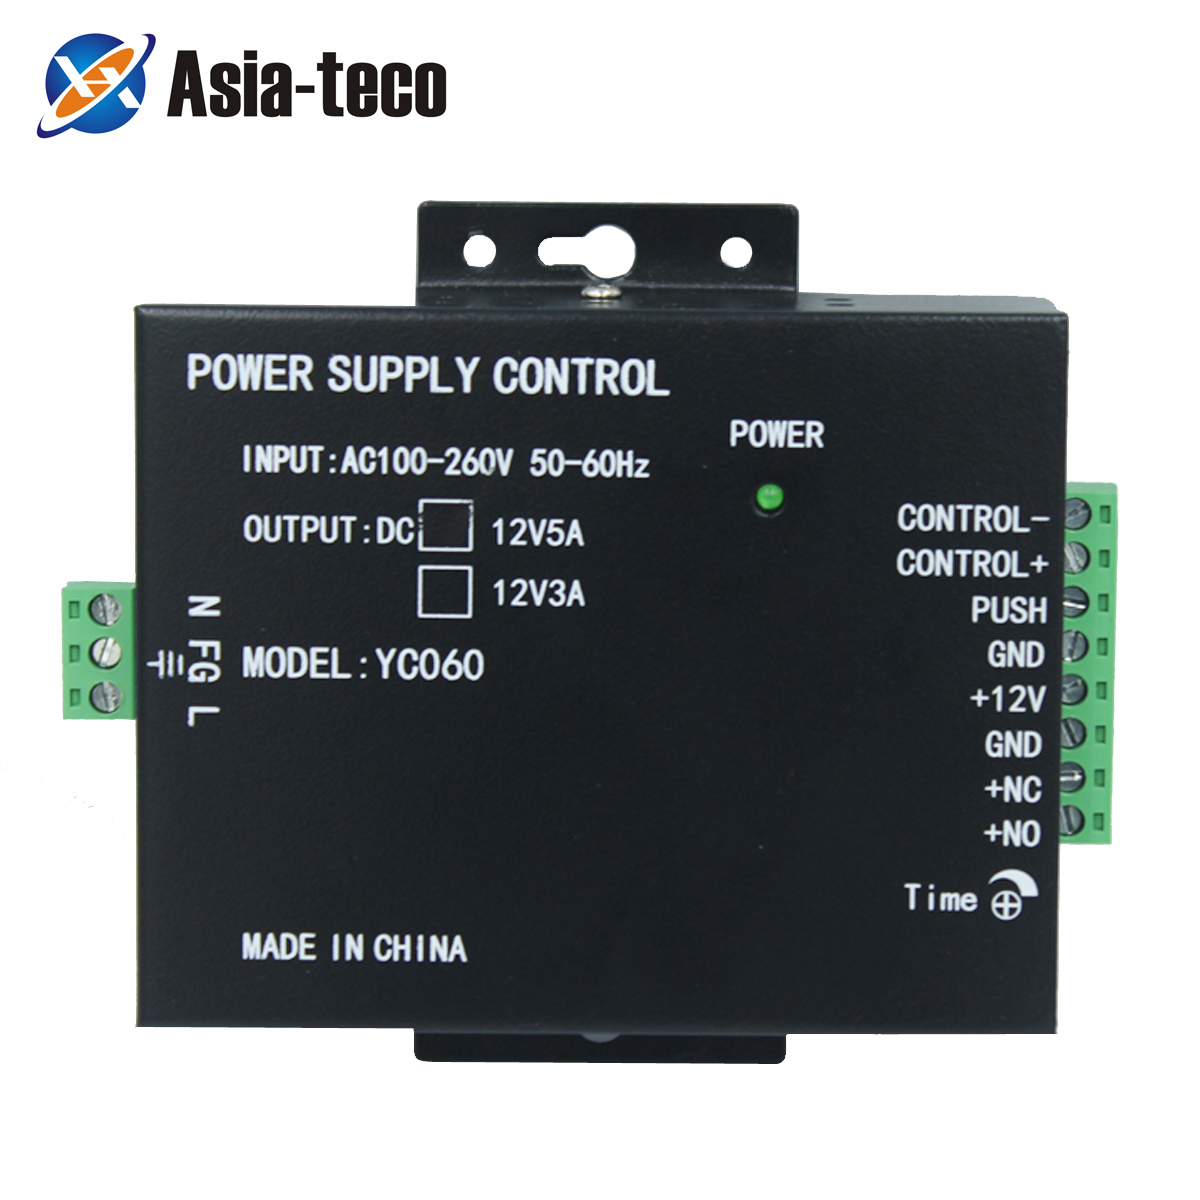 Mini Power Supply Door RFID Fingerprint Access Control Supplier Adapter Covertor System Machine DC 12V 3A 5A AC 100~260V